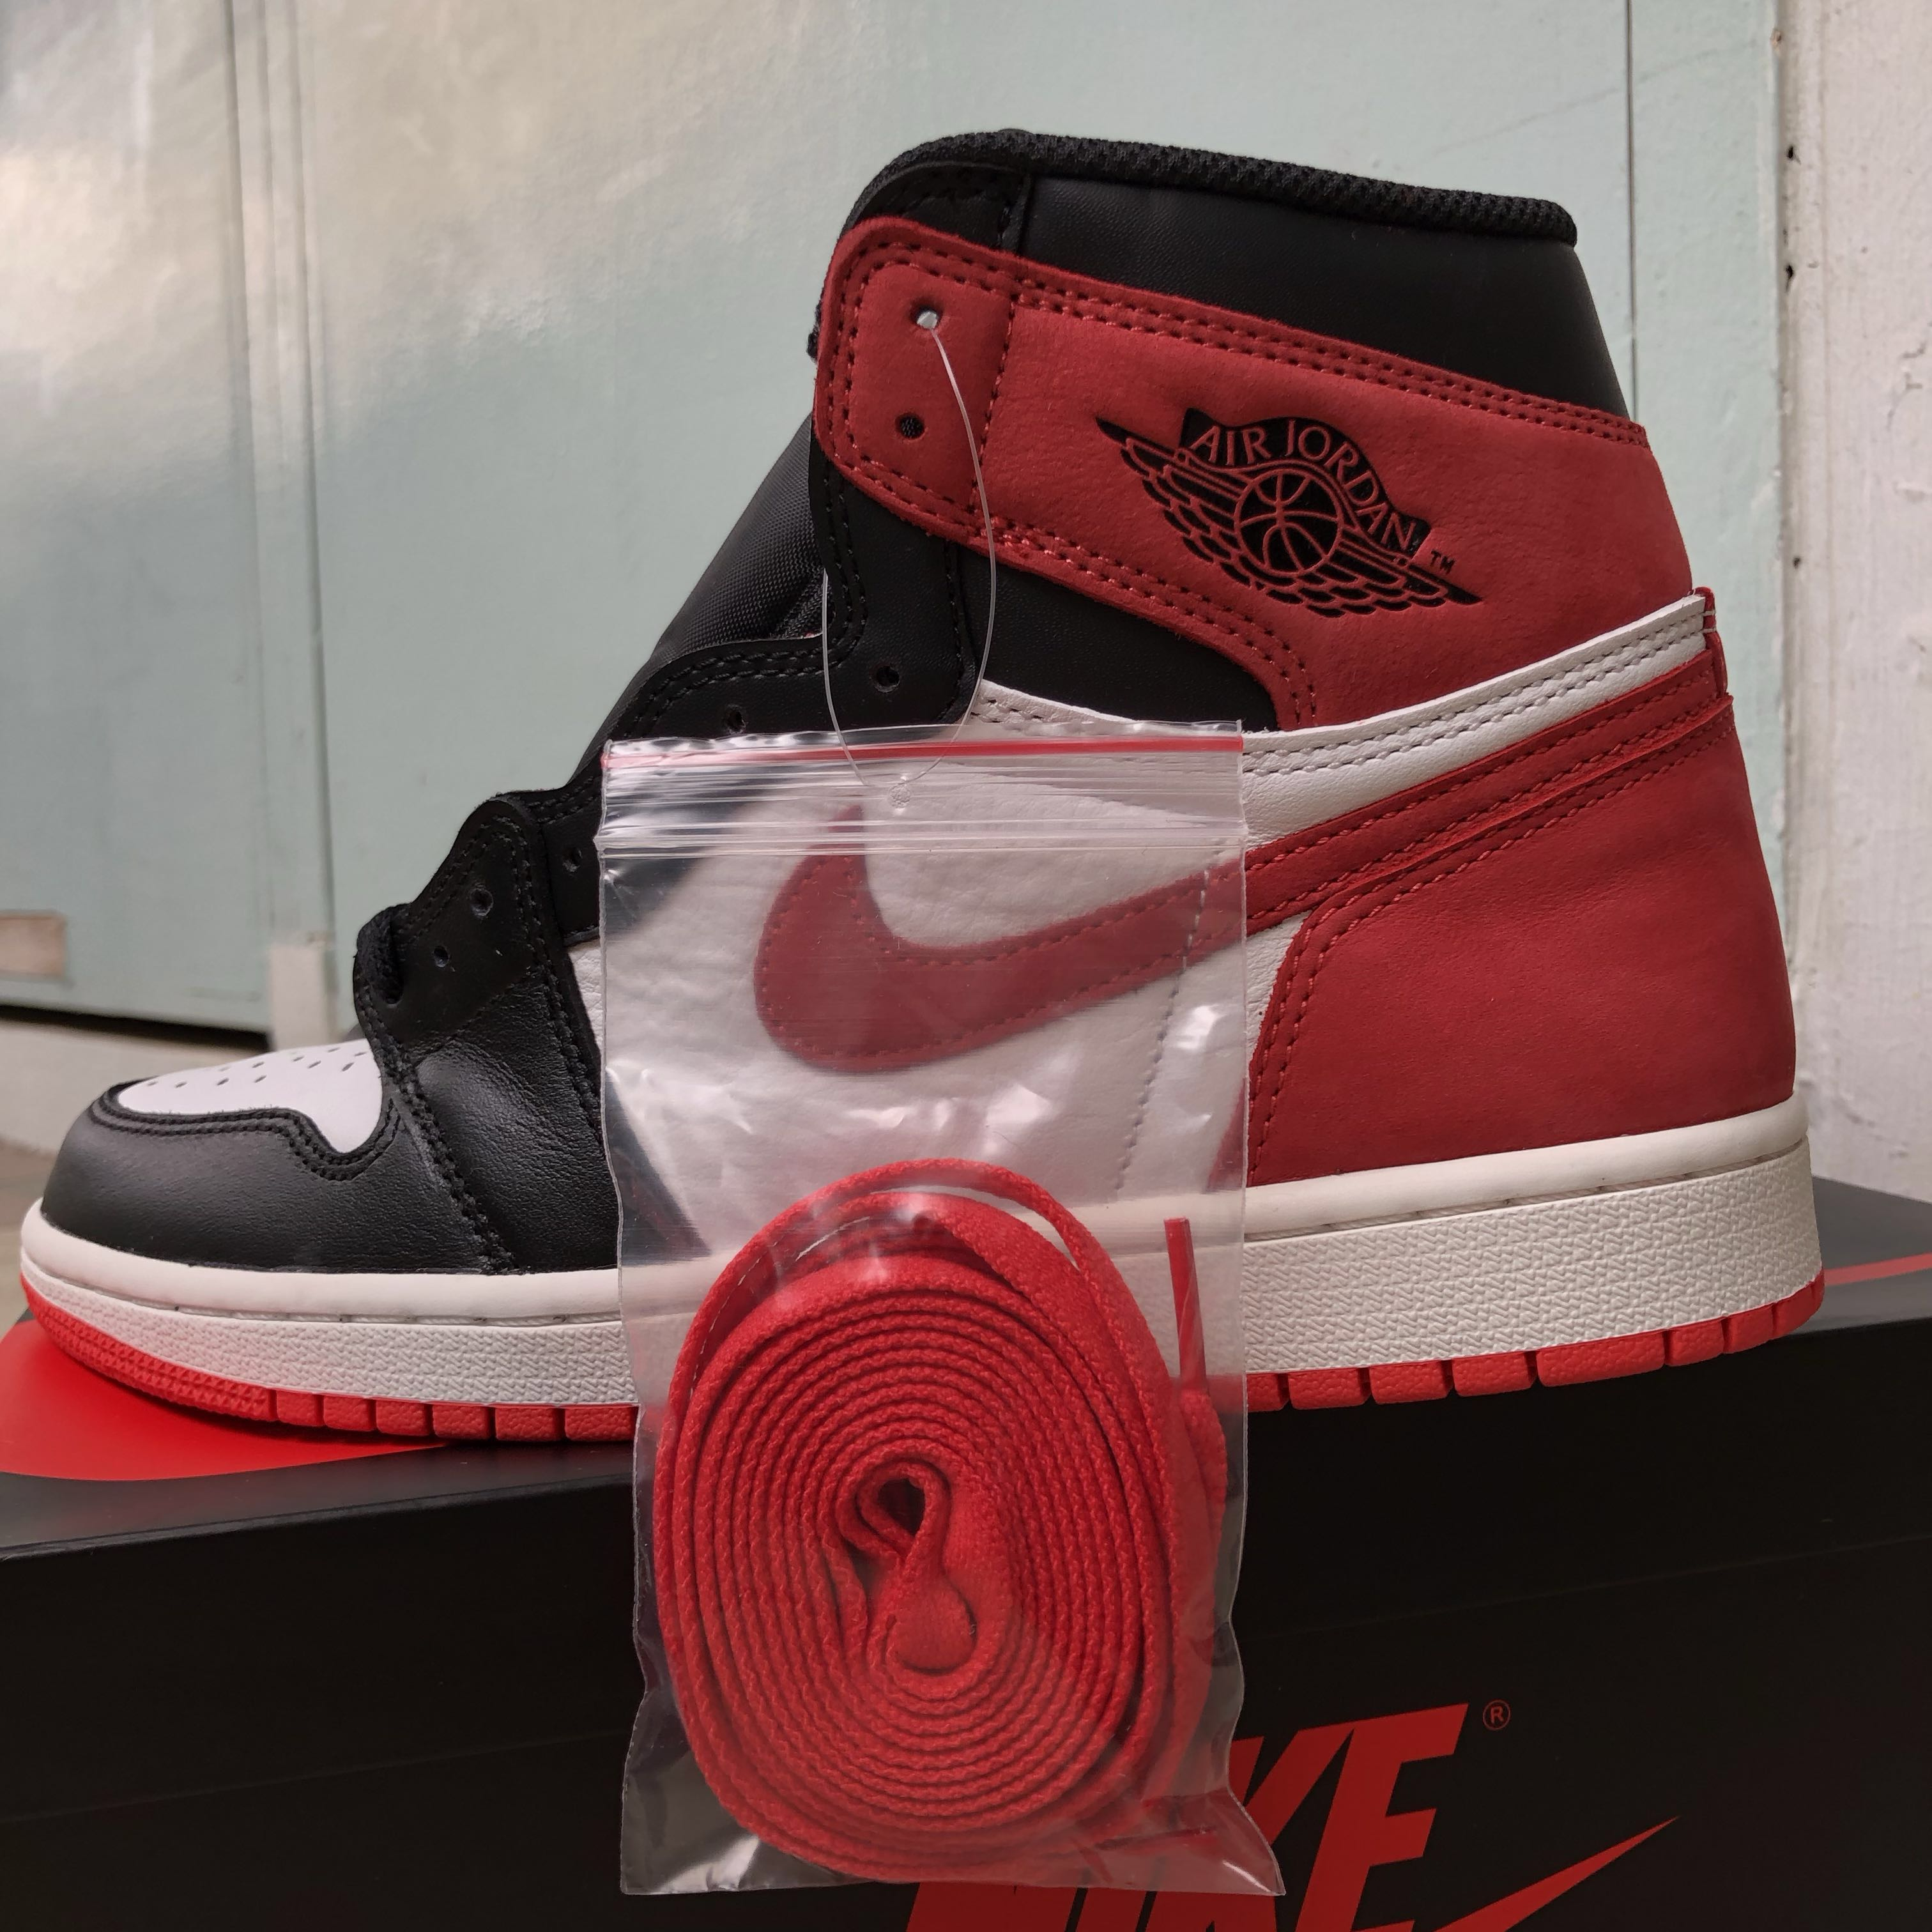 """d18391a2dd3 US7.5 Nike Air Jordan Retro High OG Track Red """"Best Hand In The Game"""" Six  Rings, Men's Fashion, Footwear, Sneakers on Carousell"""